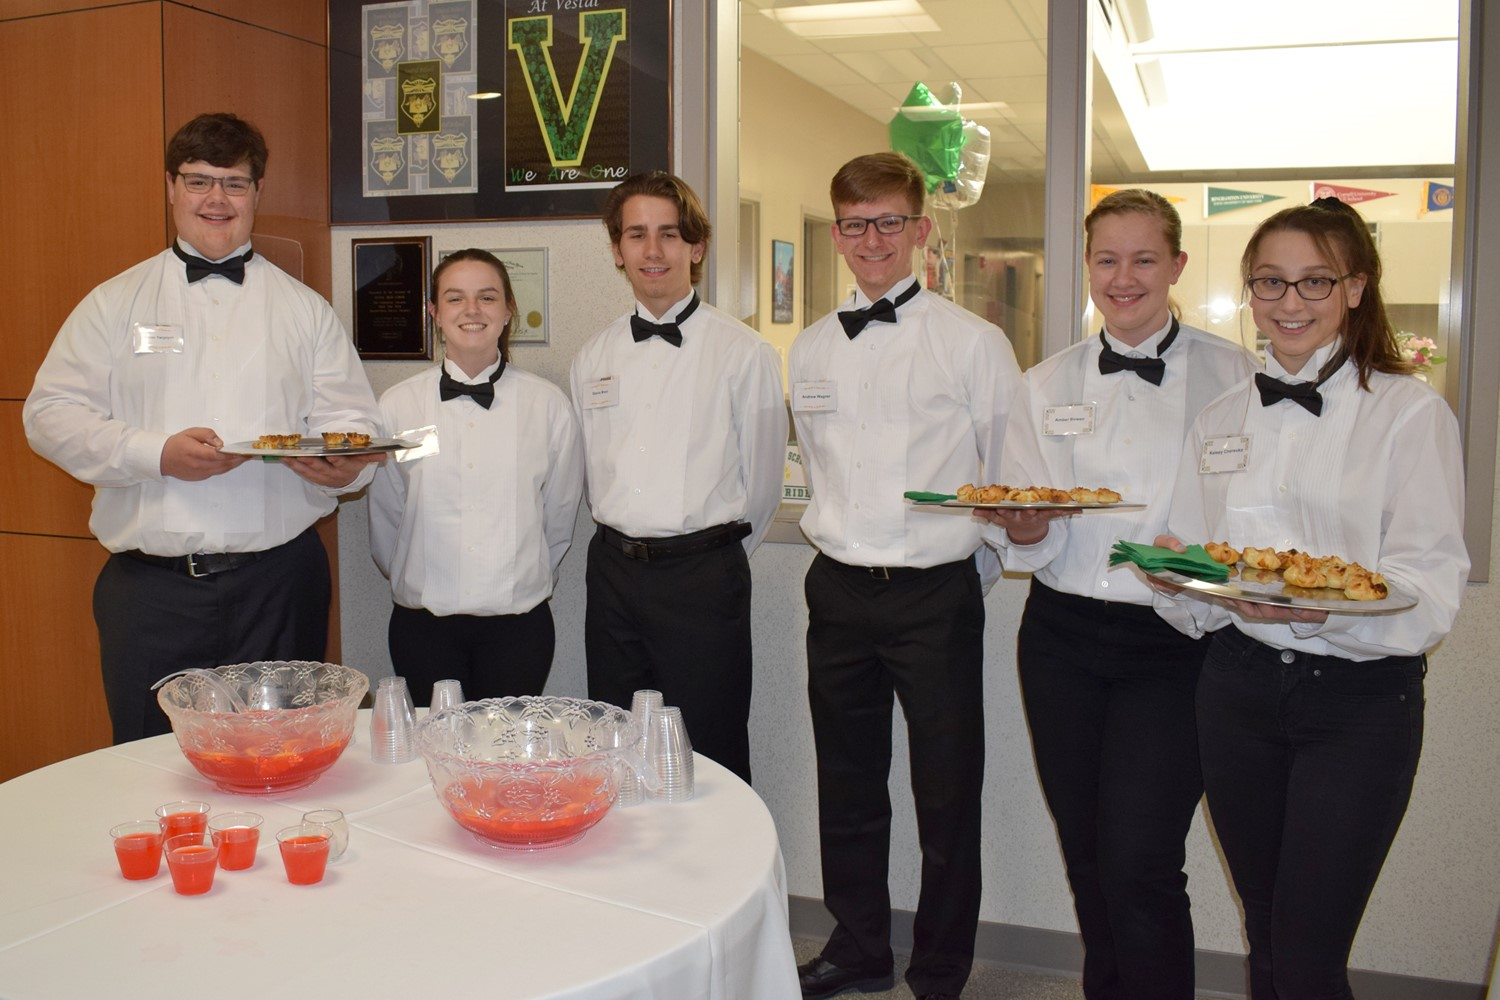 Student wait staff are ready to serve punch and delicious canapes during the reception.